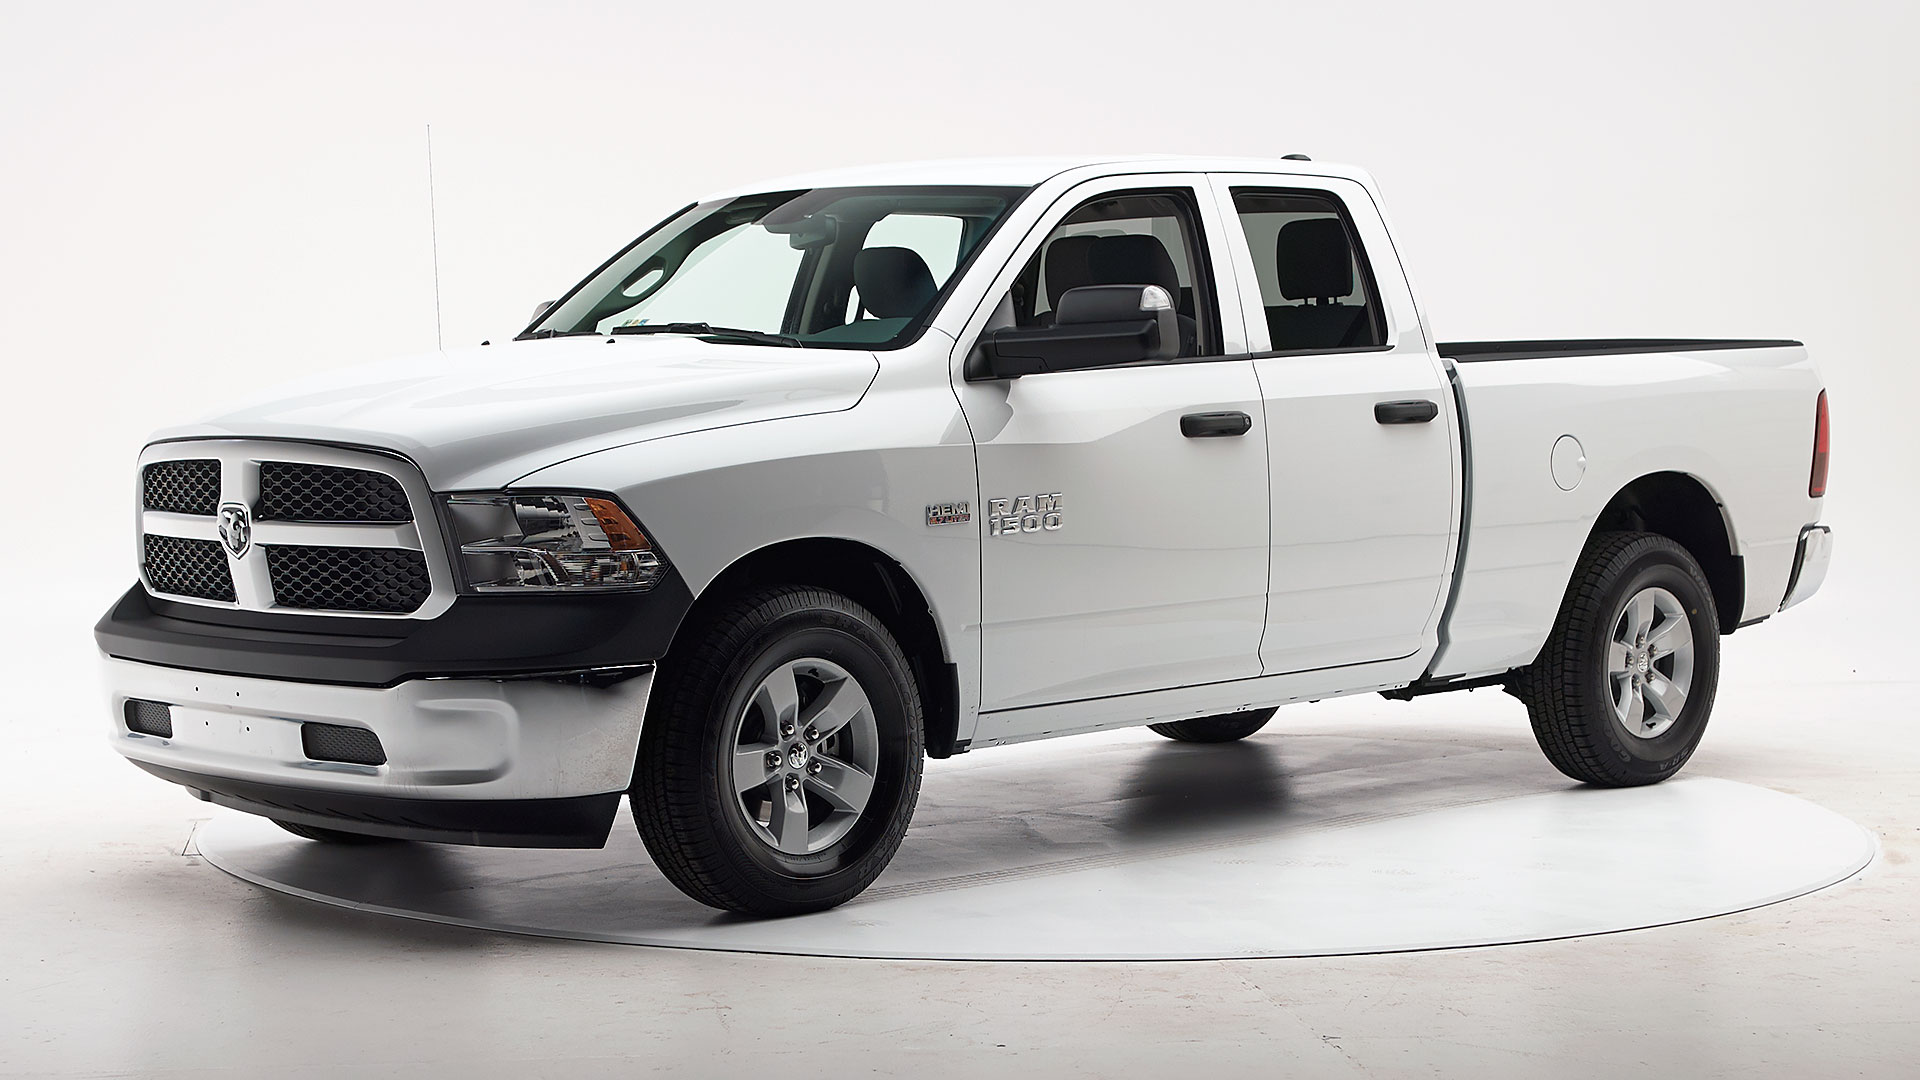 2016 Ram 1500 Extended cab pickup